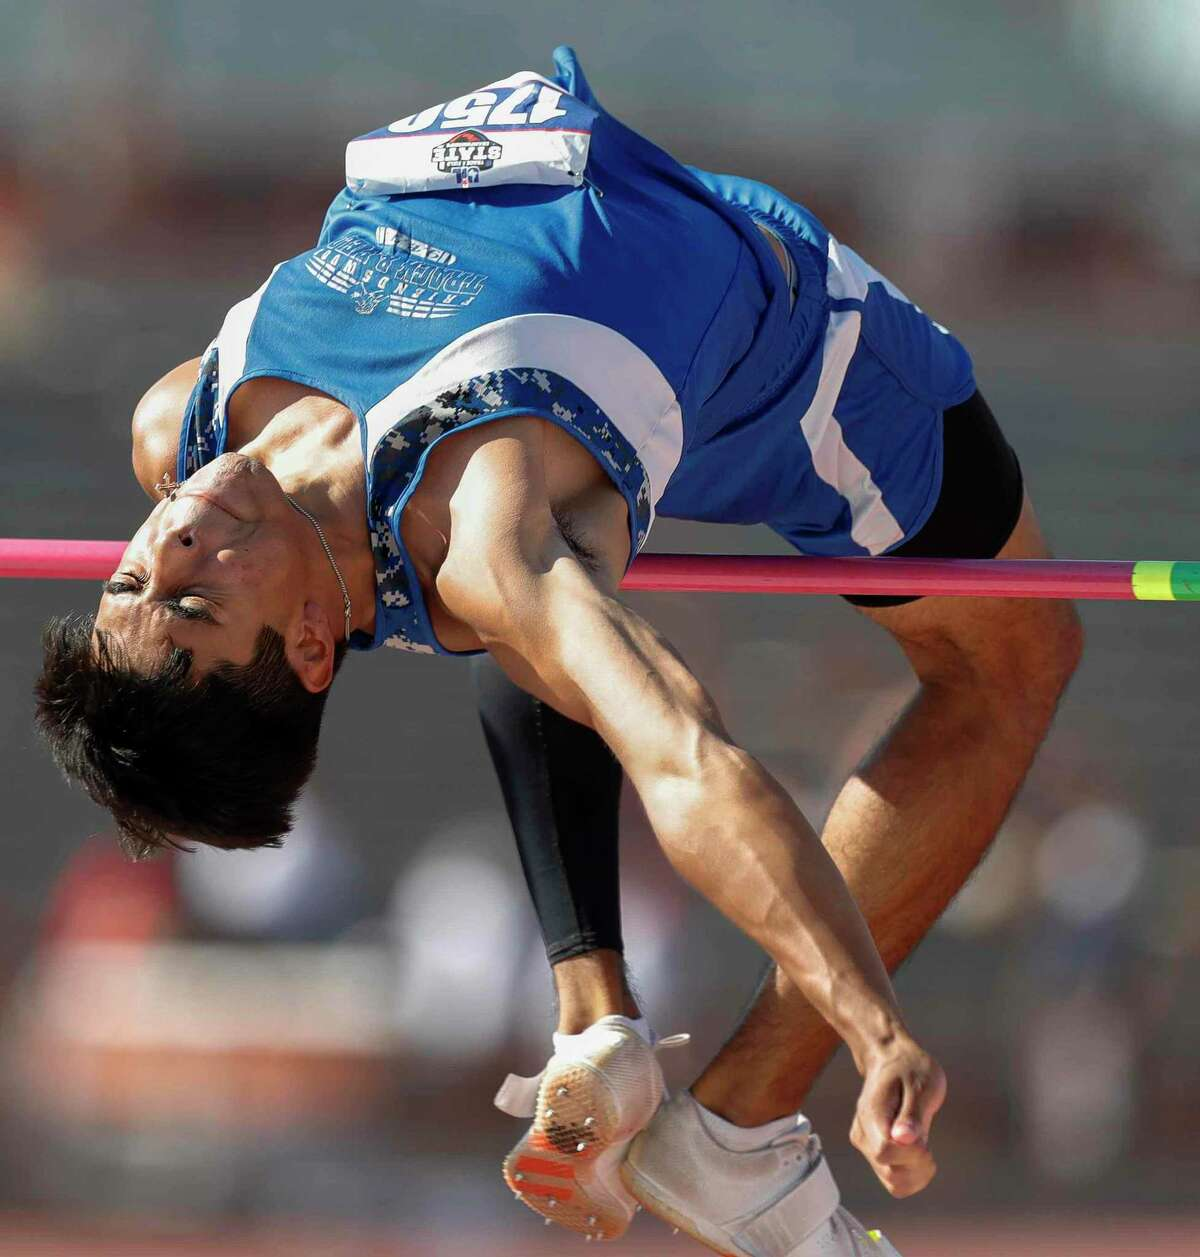 Patrick Elizondo of Friendswood competes in the boys' high jump during the Class 5A UIL Track and Field Championships at Mike A. Myers Stadium, Friday in Austin.